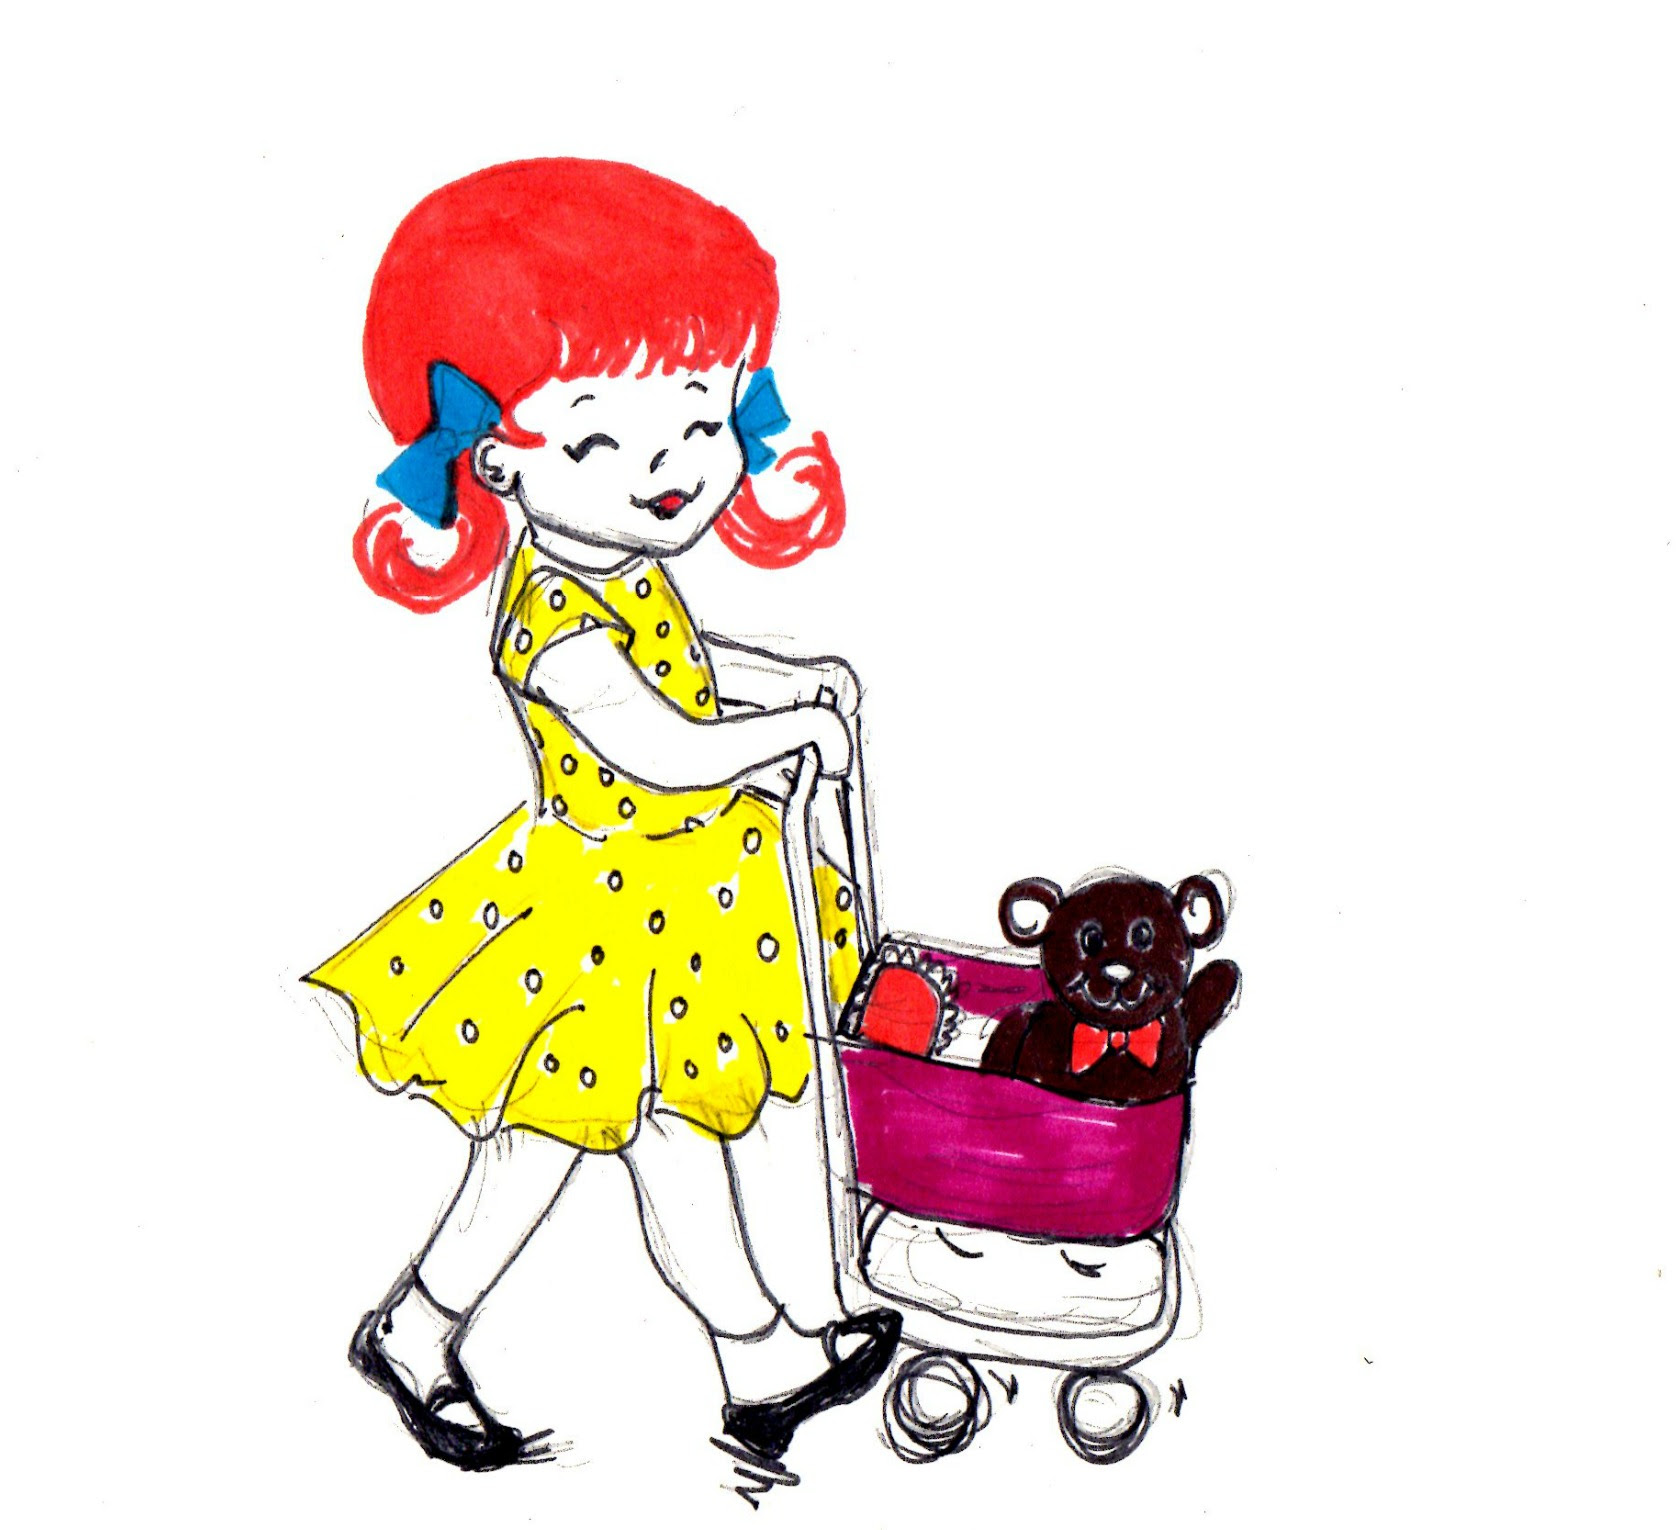 Polarn O. Pyret Girls Polka Dot Dress Illustration